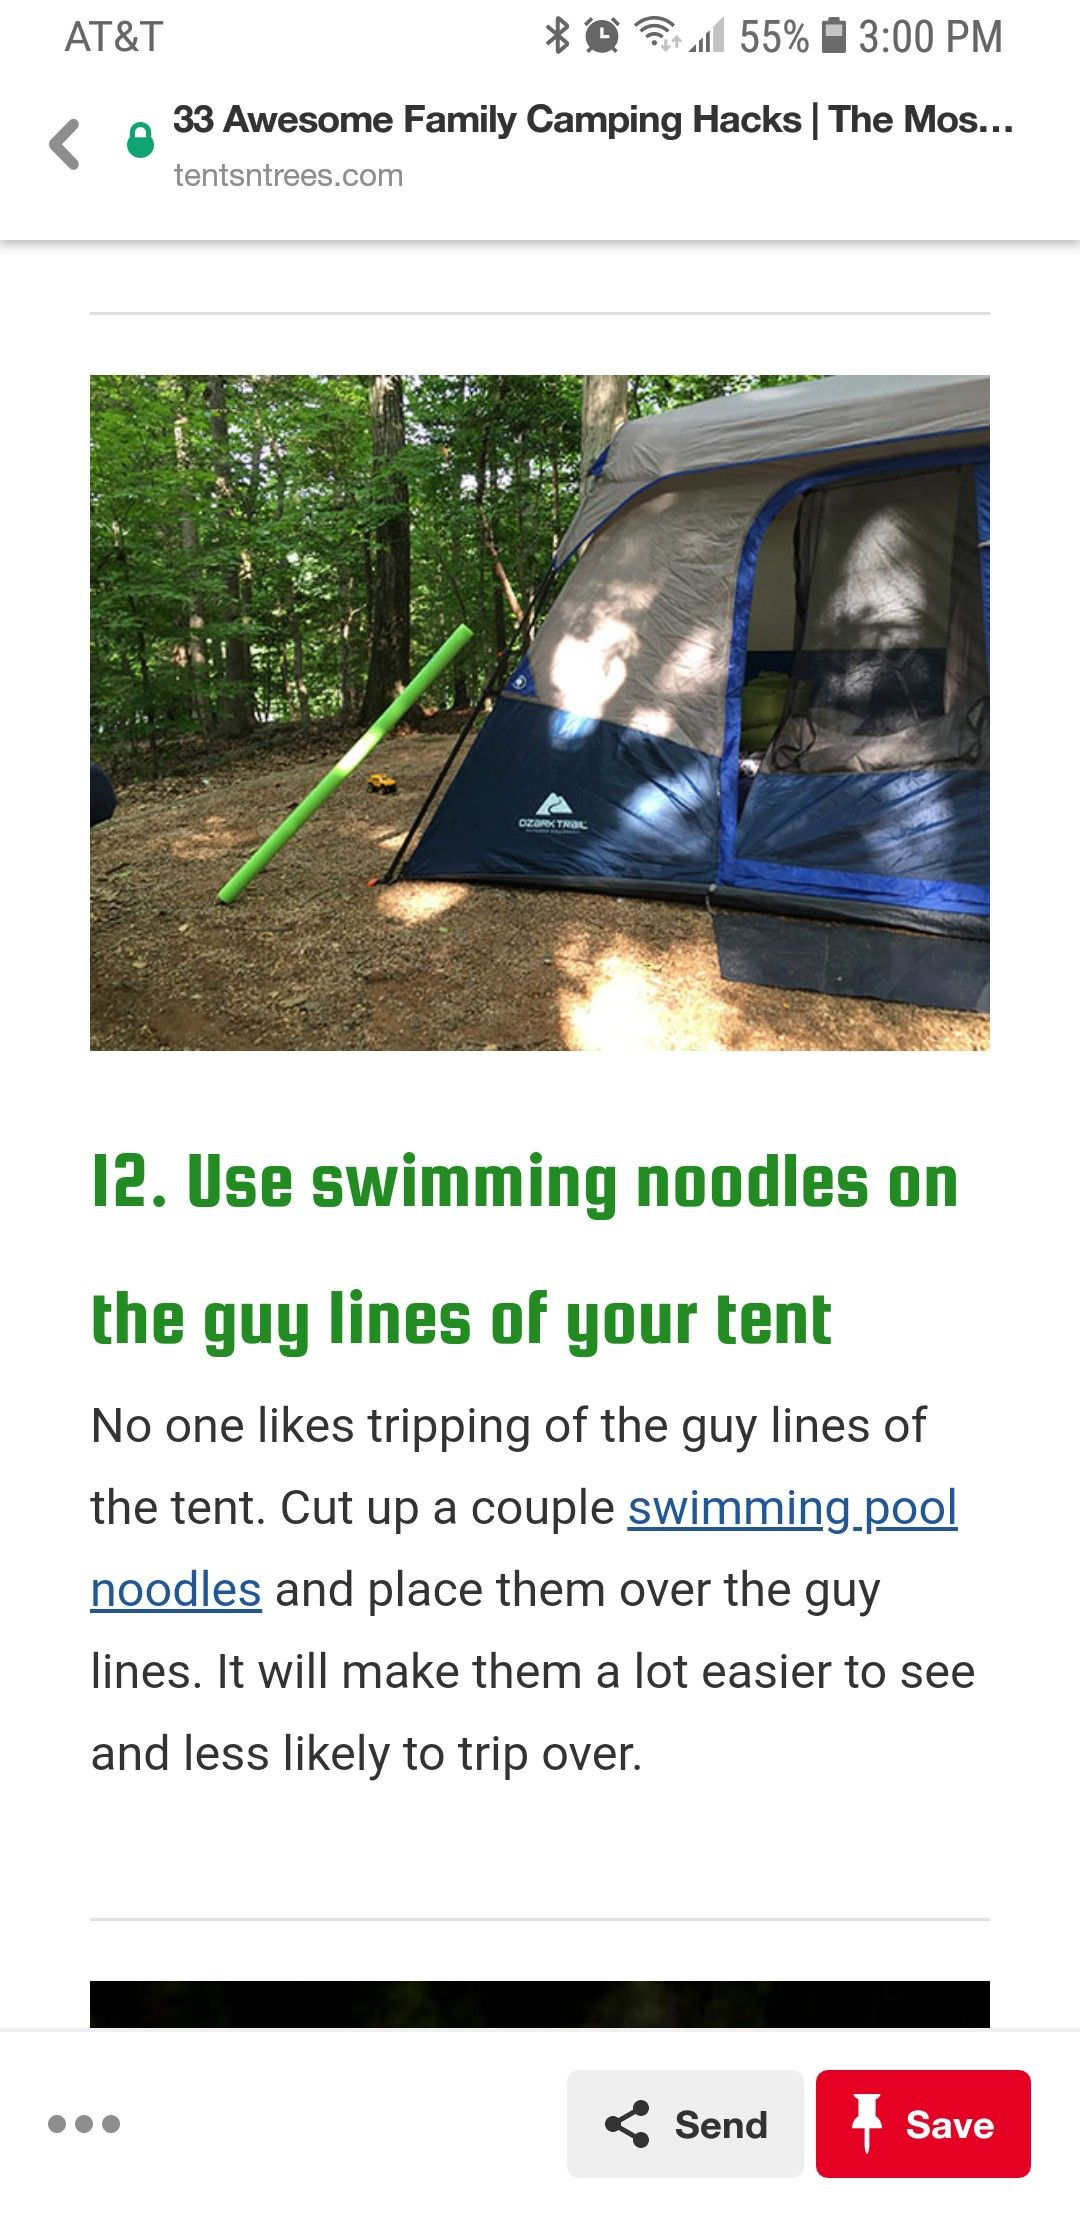 Pool noodles for tent lines | Camping life, Tent, Family ...